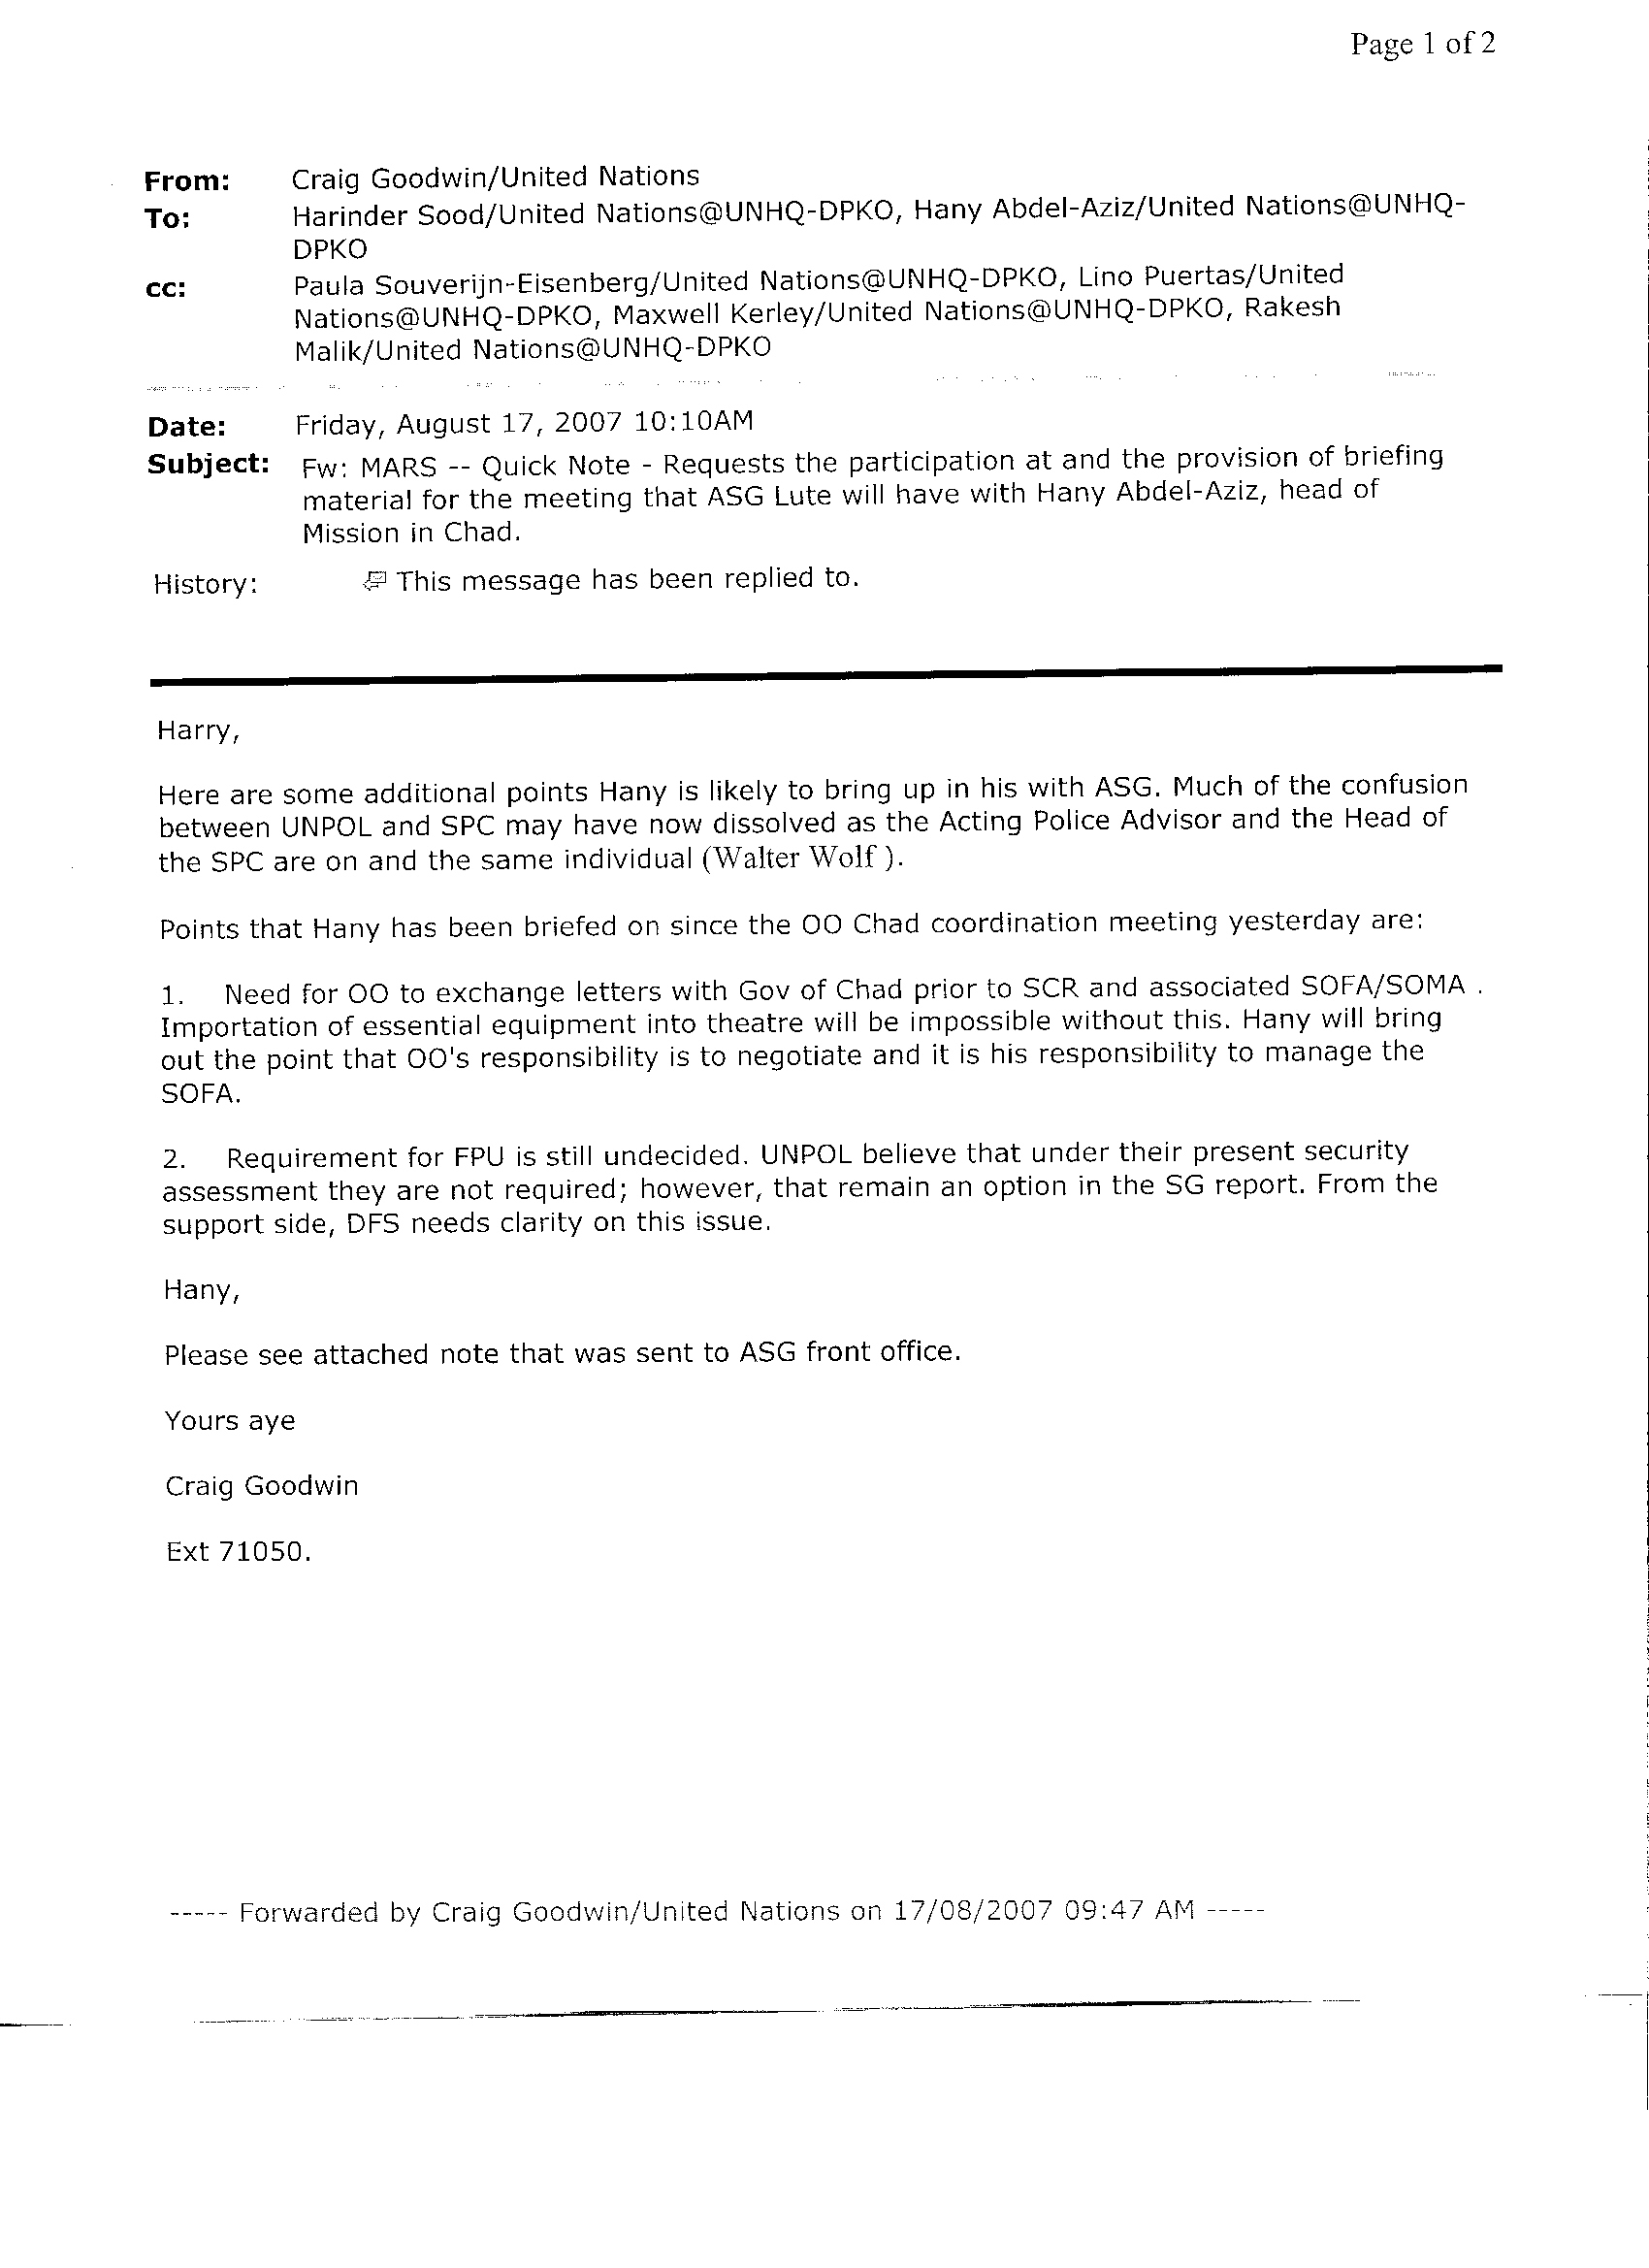 internal memo format 10 best images of example of memo to staff ...